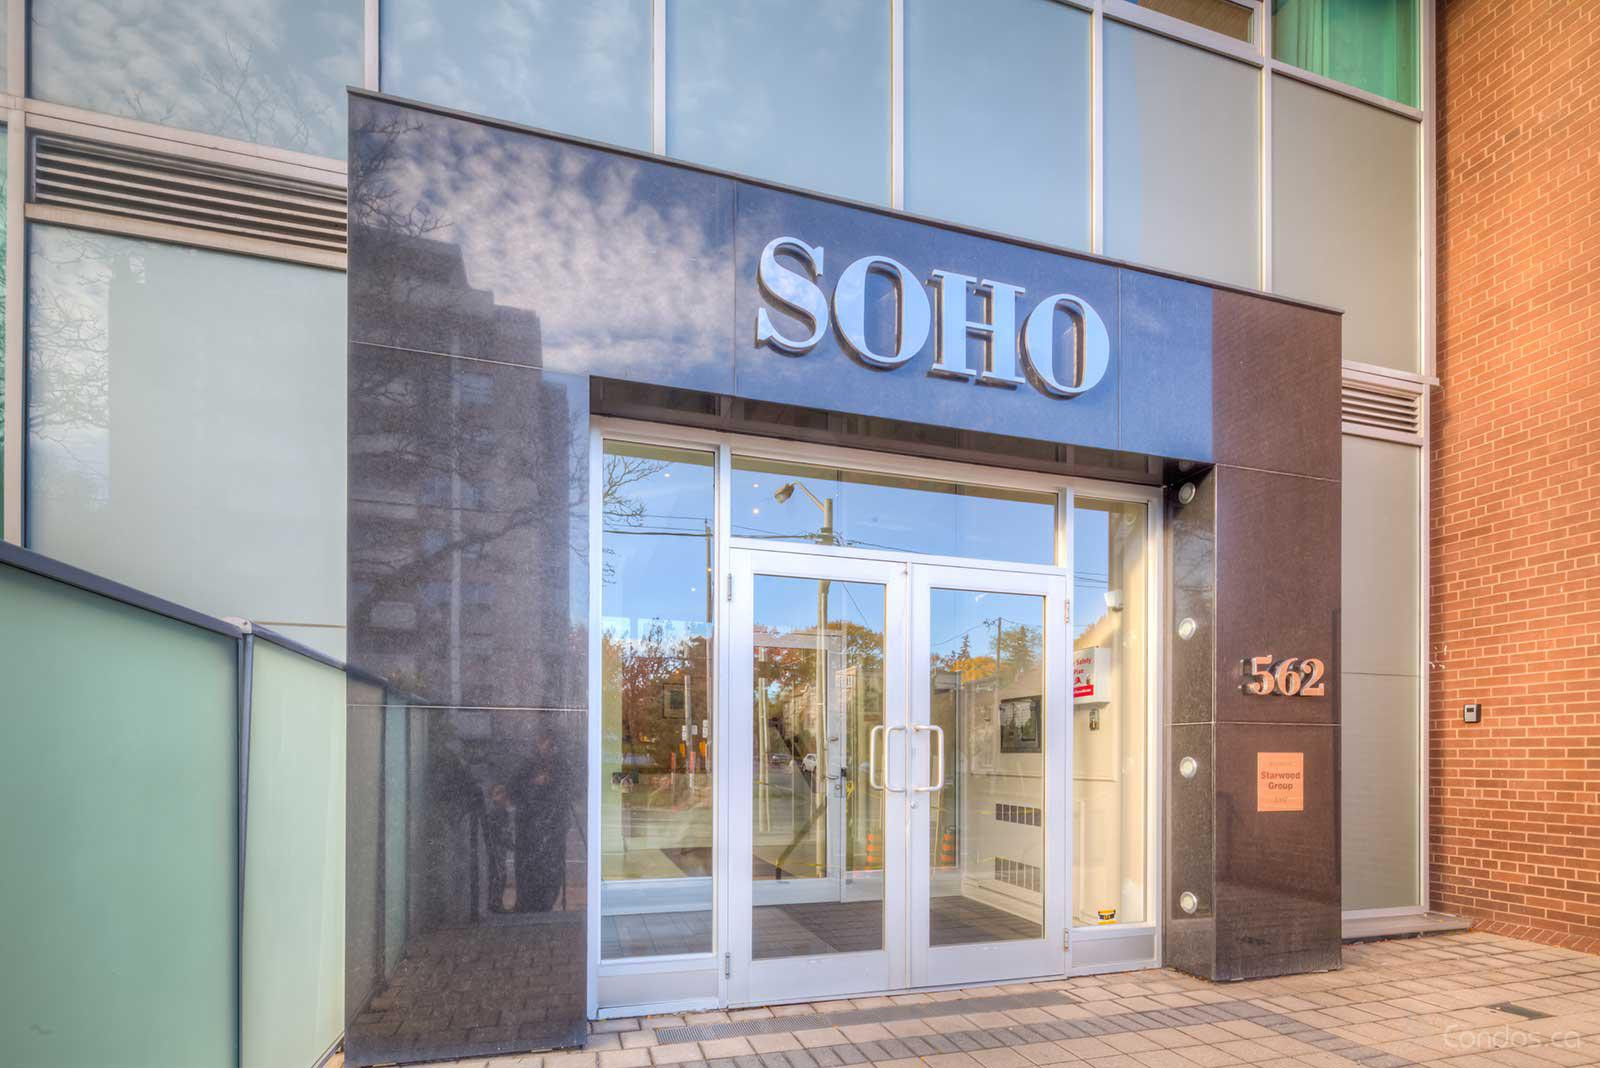 Soho Bayview Lofts at 562 Eglinton Ave E, Toronto 1